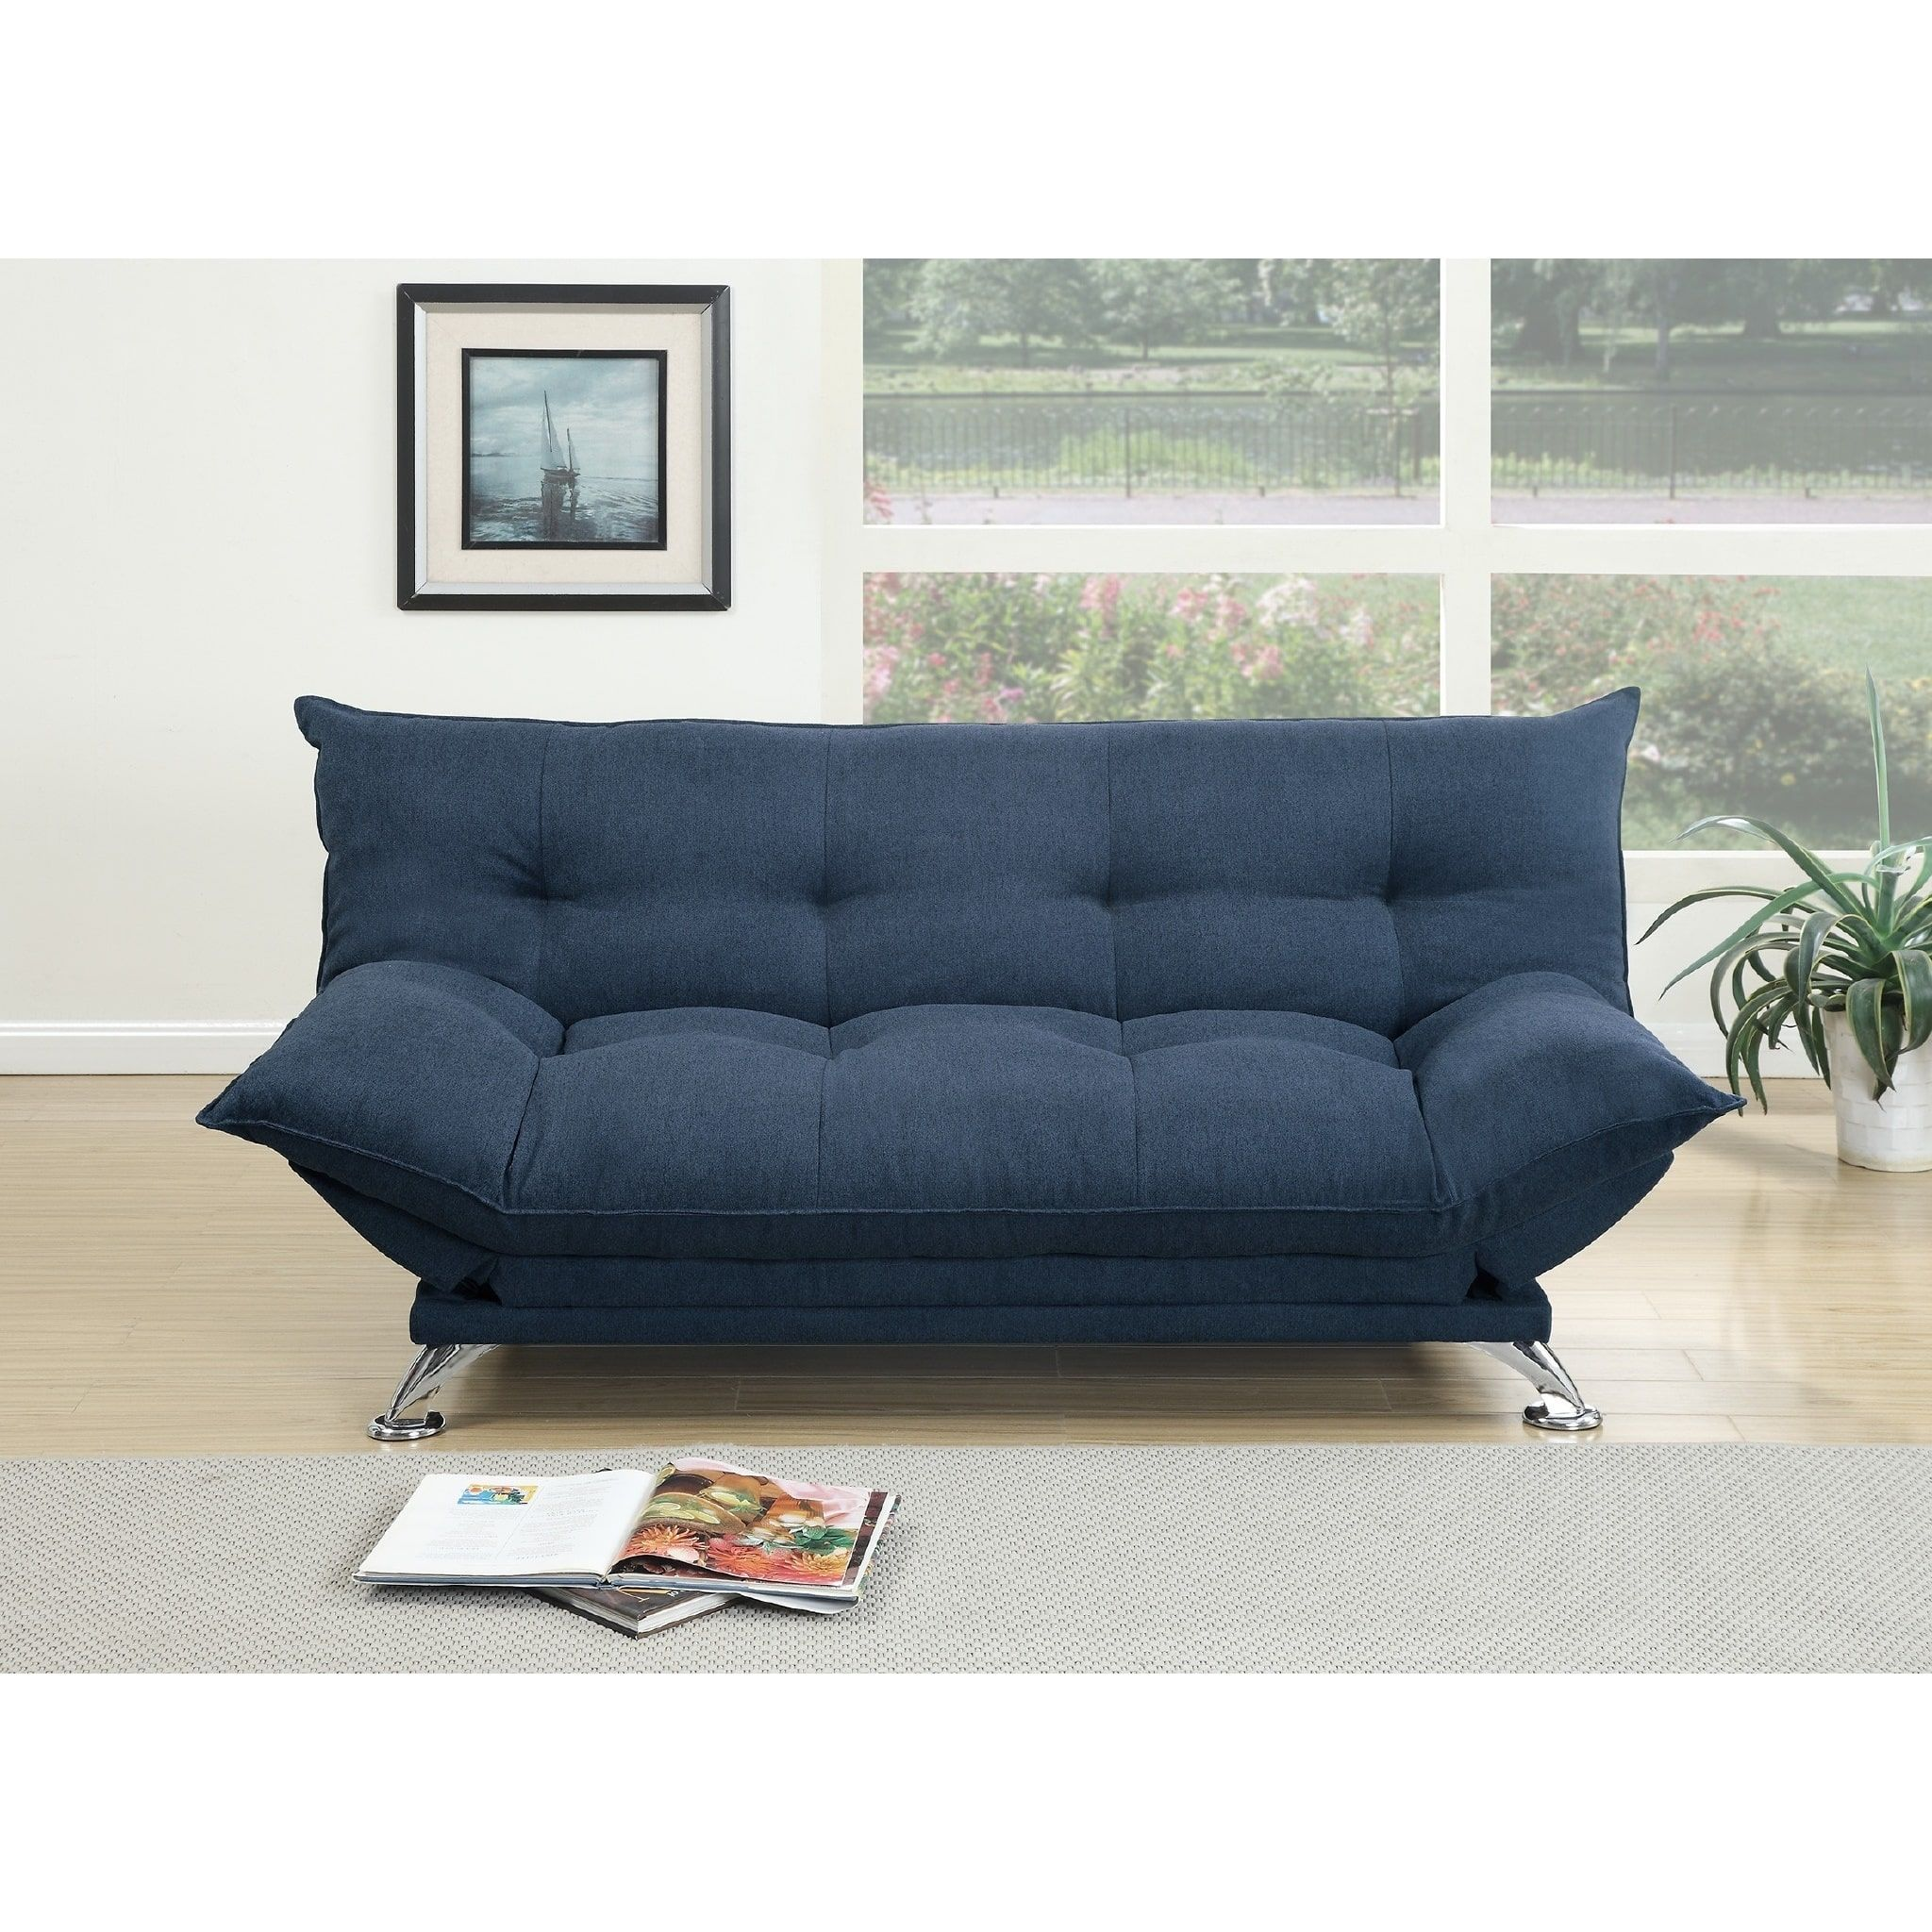 Rio Polyfiber Plush Sleeper Sofa Blue Futon Sofa Futon Sofa Bed Sofa Bed Navy